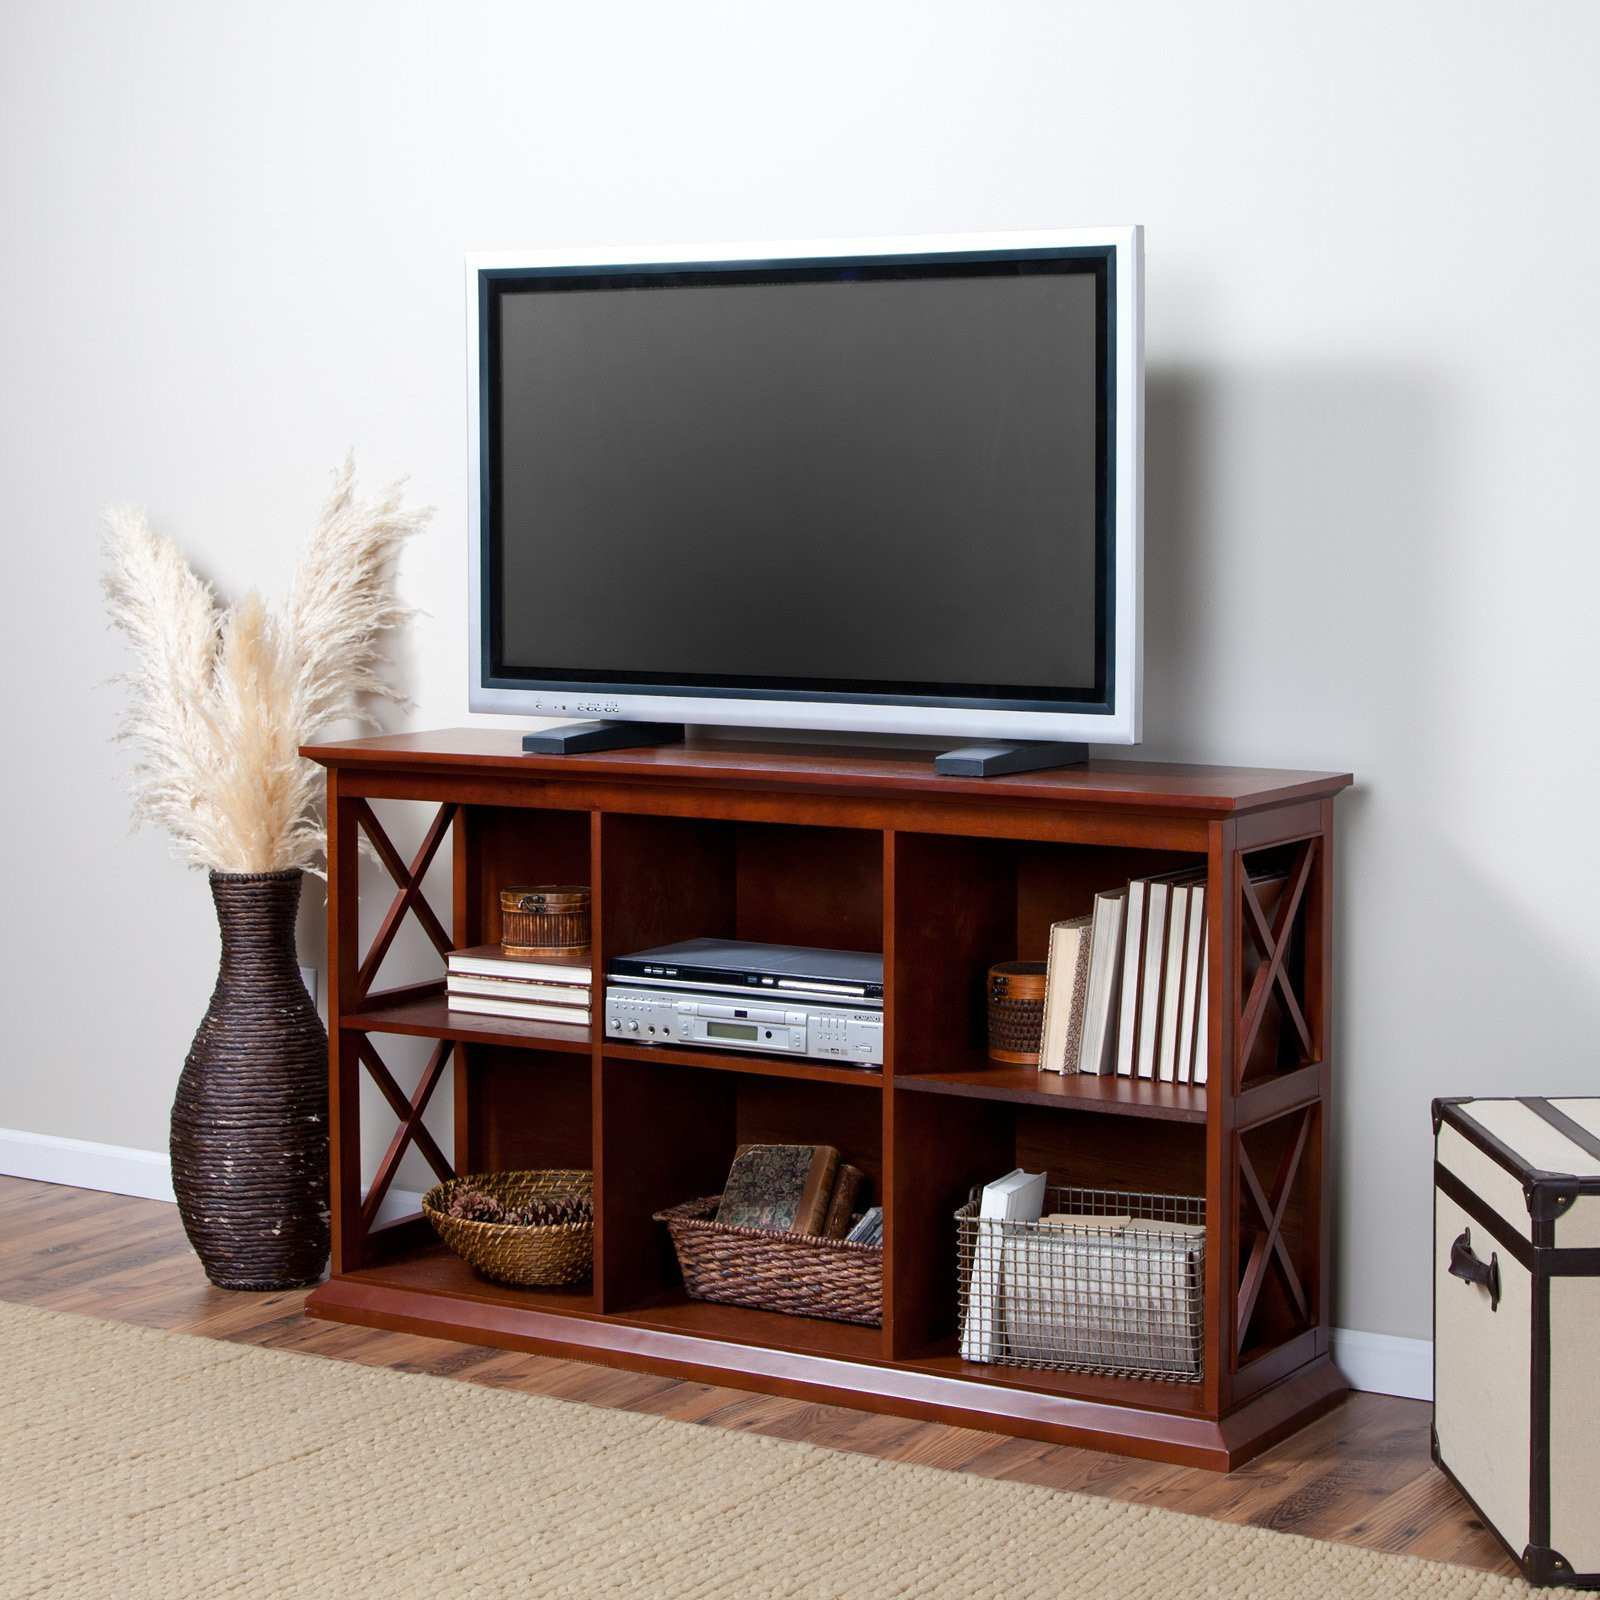 Black Opod Tv Stands Throughout Most Recent Awesome Furniture Corner Table Of Flat Screen Tv Stand Wooden Flat (View 5 of 20)